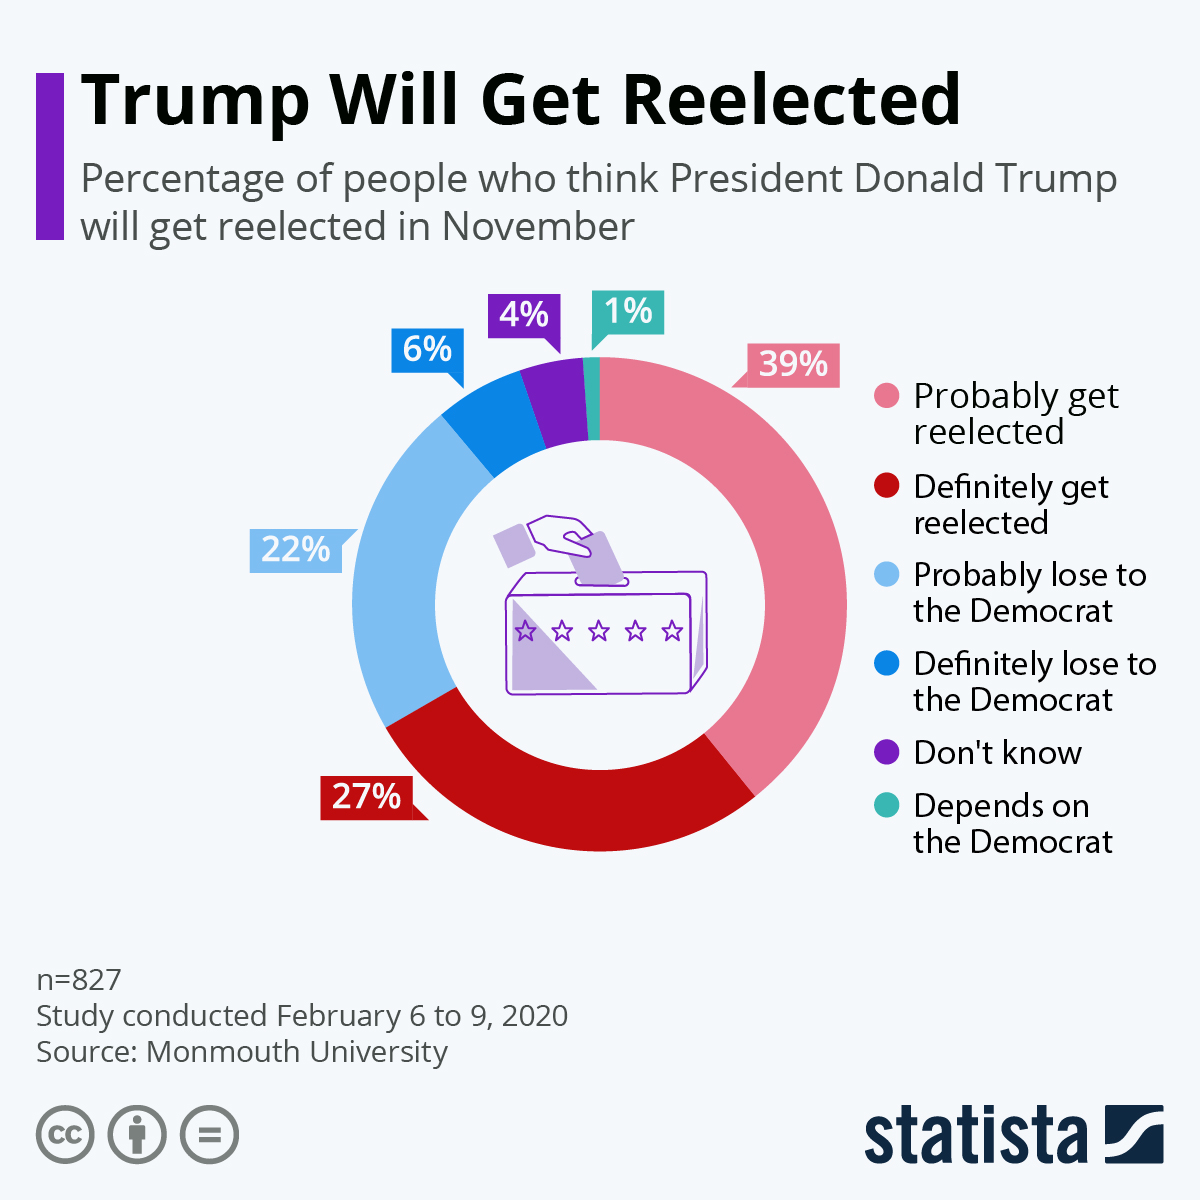 USA Election 2020: Will Trump Win The Title Again? #Infographic